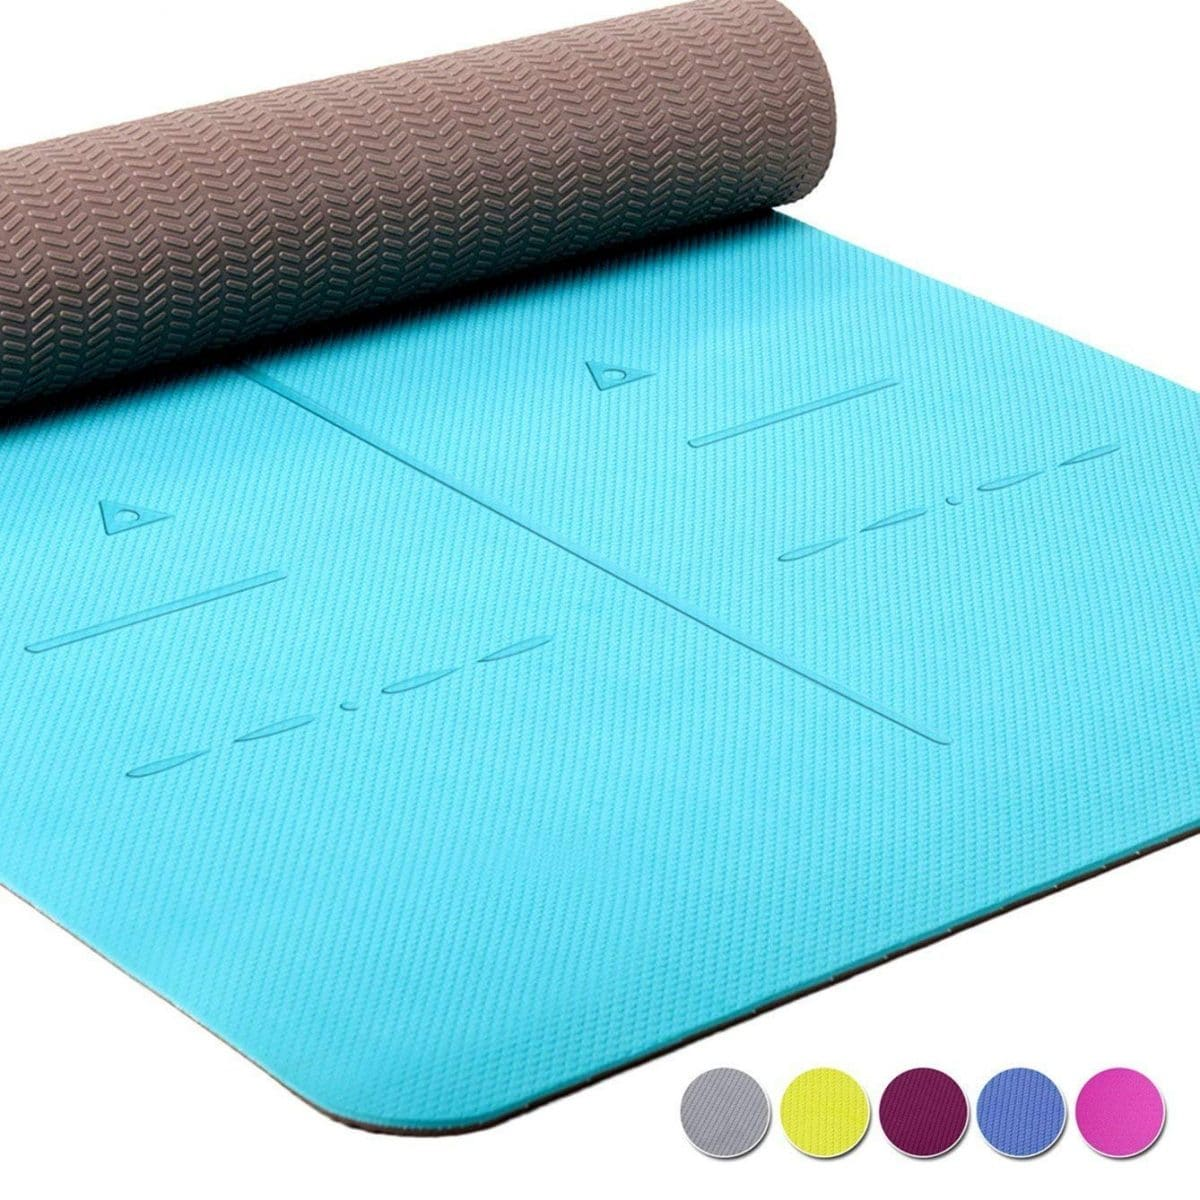 Best Cheap Yoga Mats 2020 Under 30 50 Budgetreport